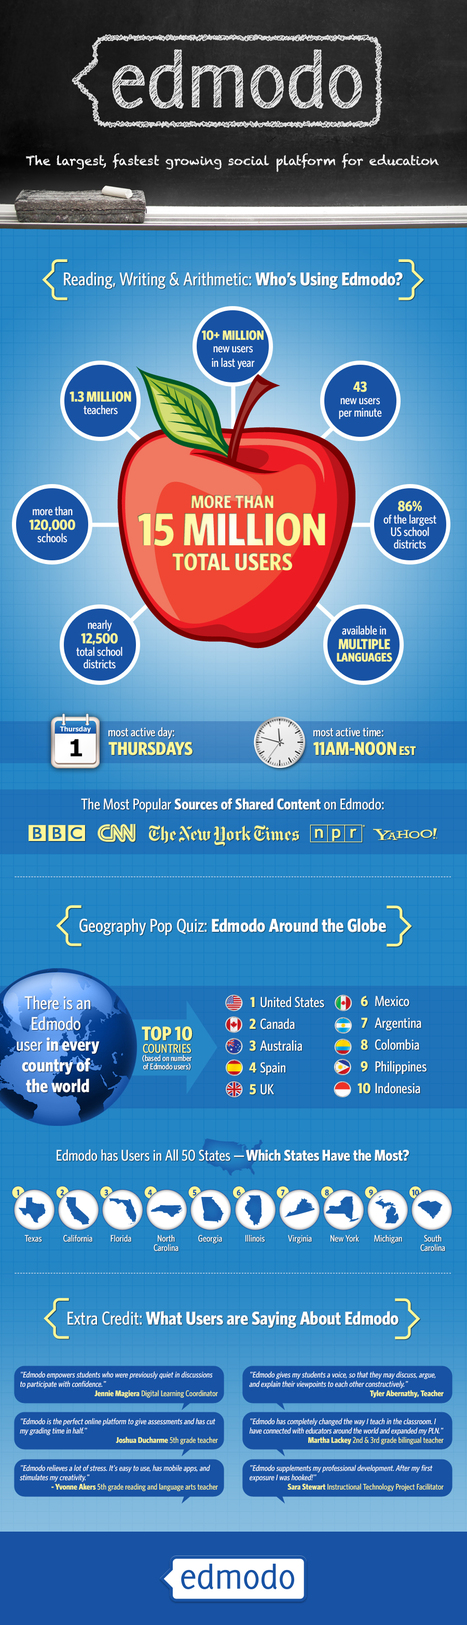 Edmodo Hits 15 Million Users [Infographic] | English 2.0 | Scoop.it